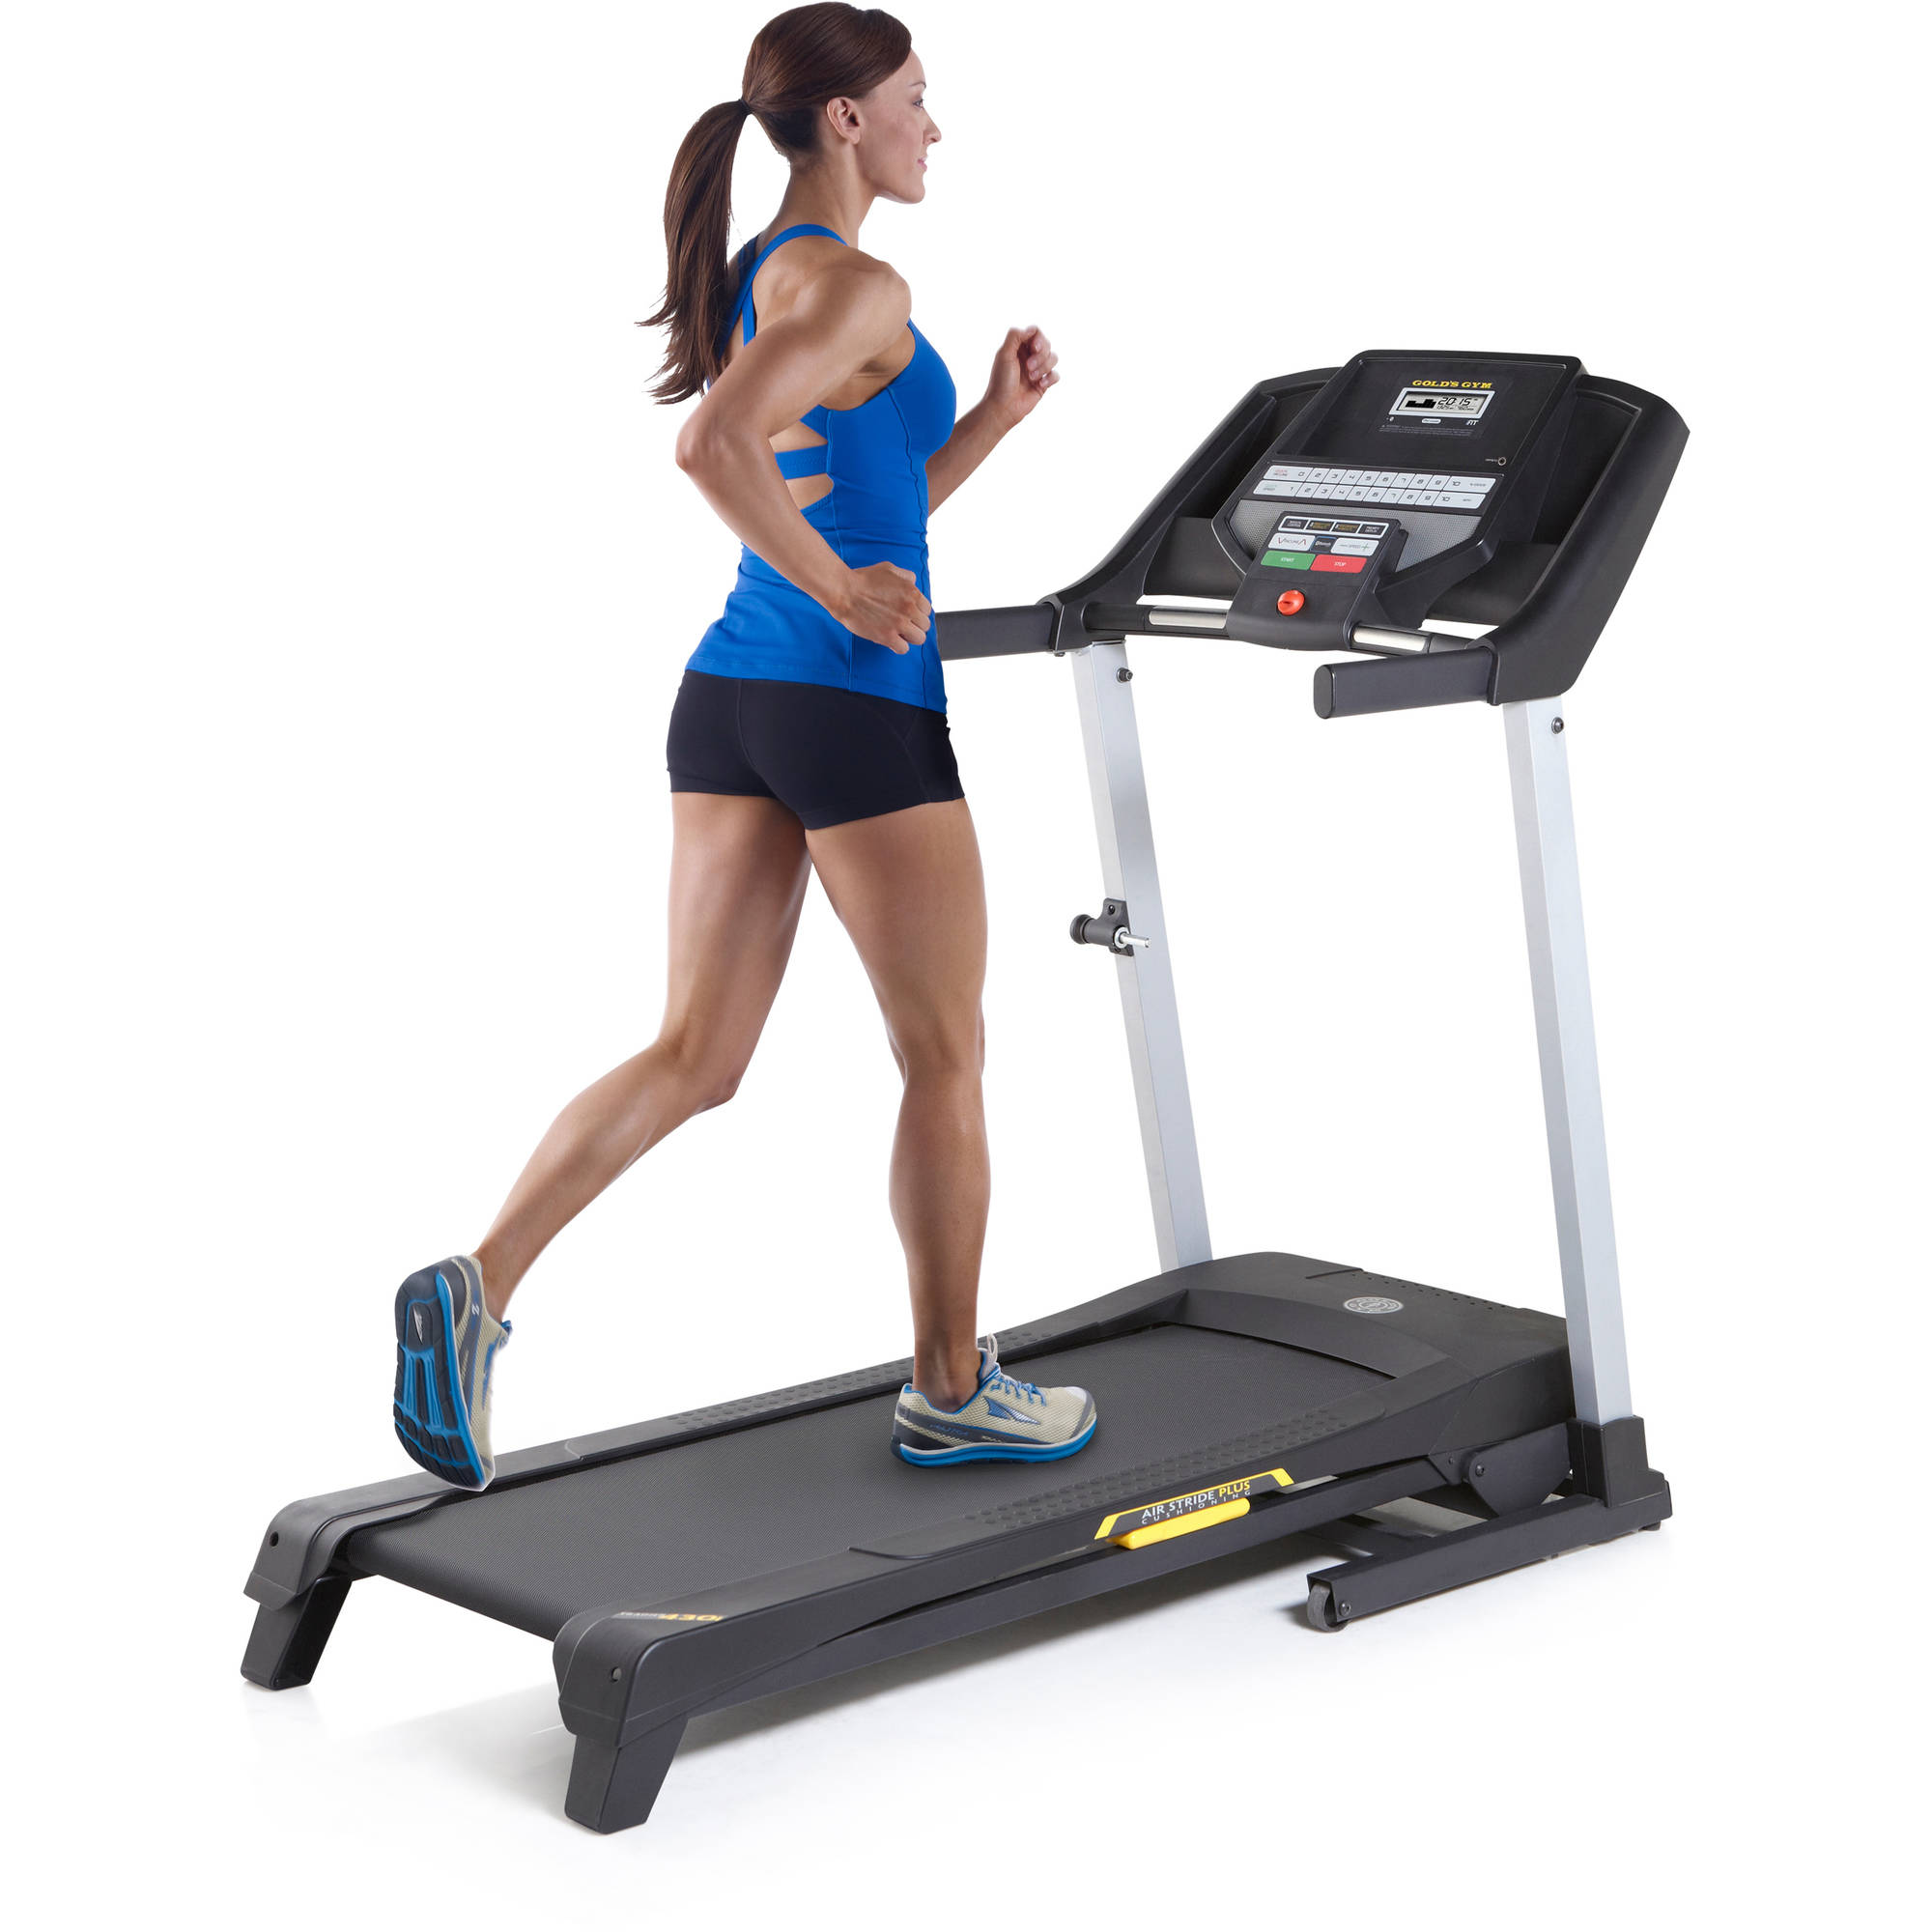 Gold's Gym Trainer 430i Treadmill with Easy Assembly and Power Incline -  Walmart.com